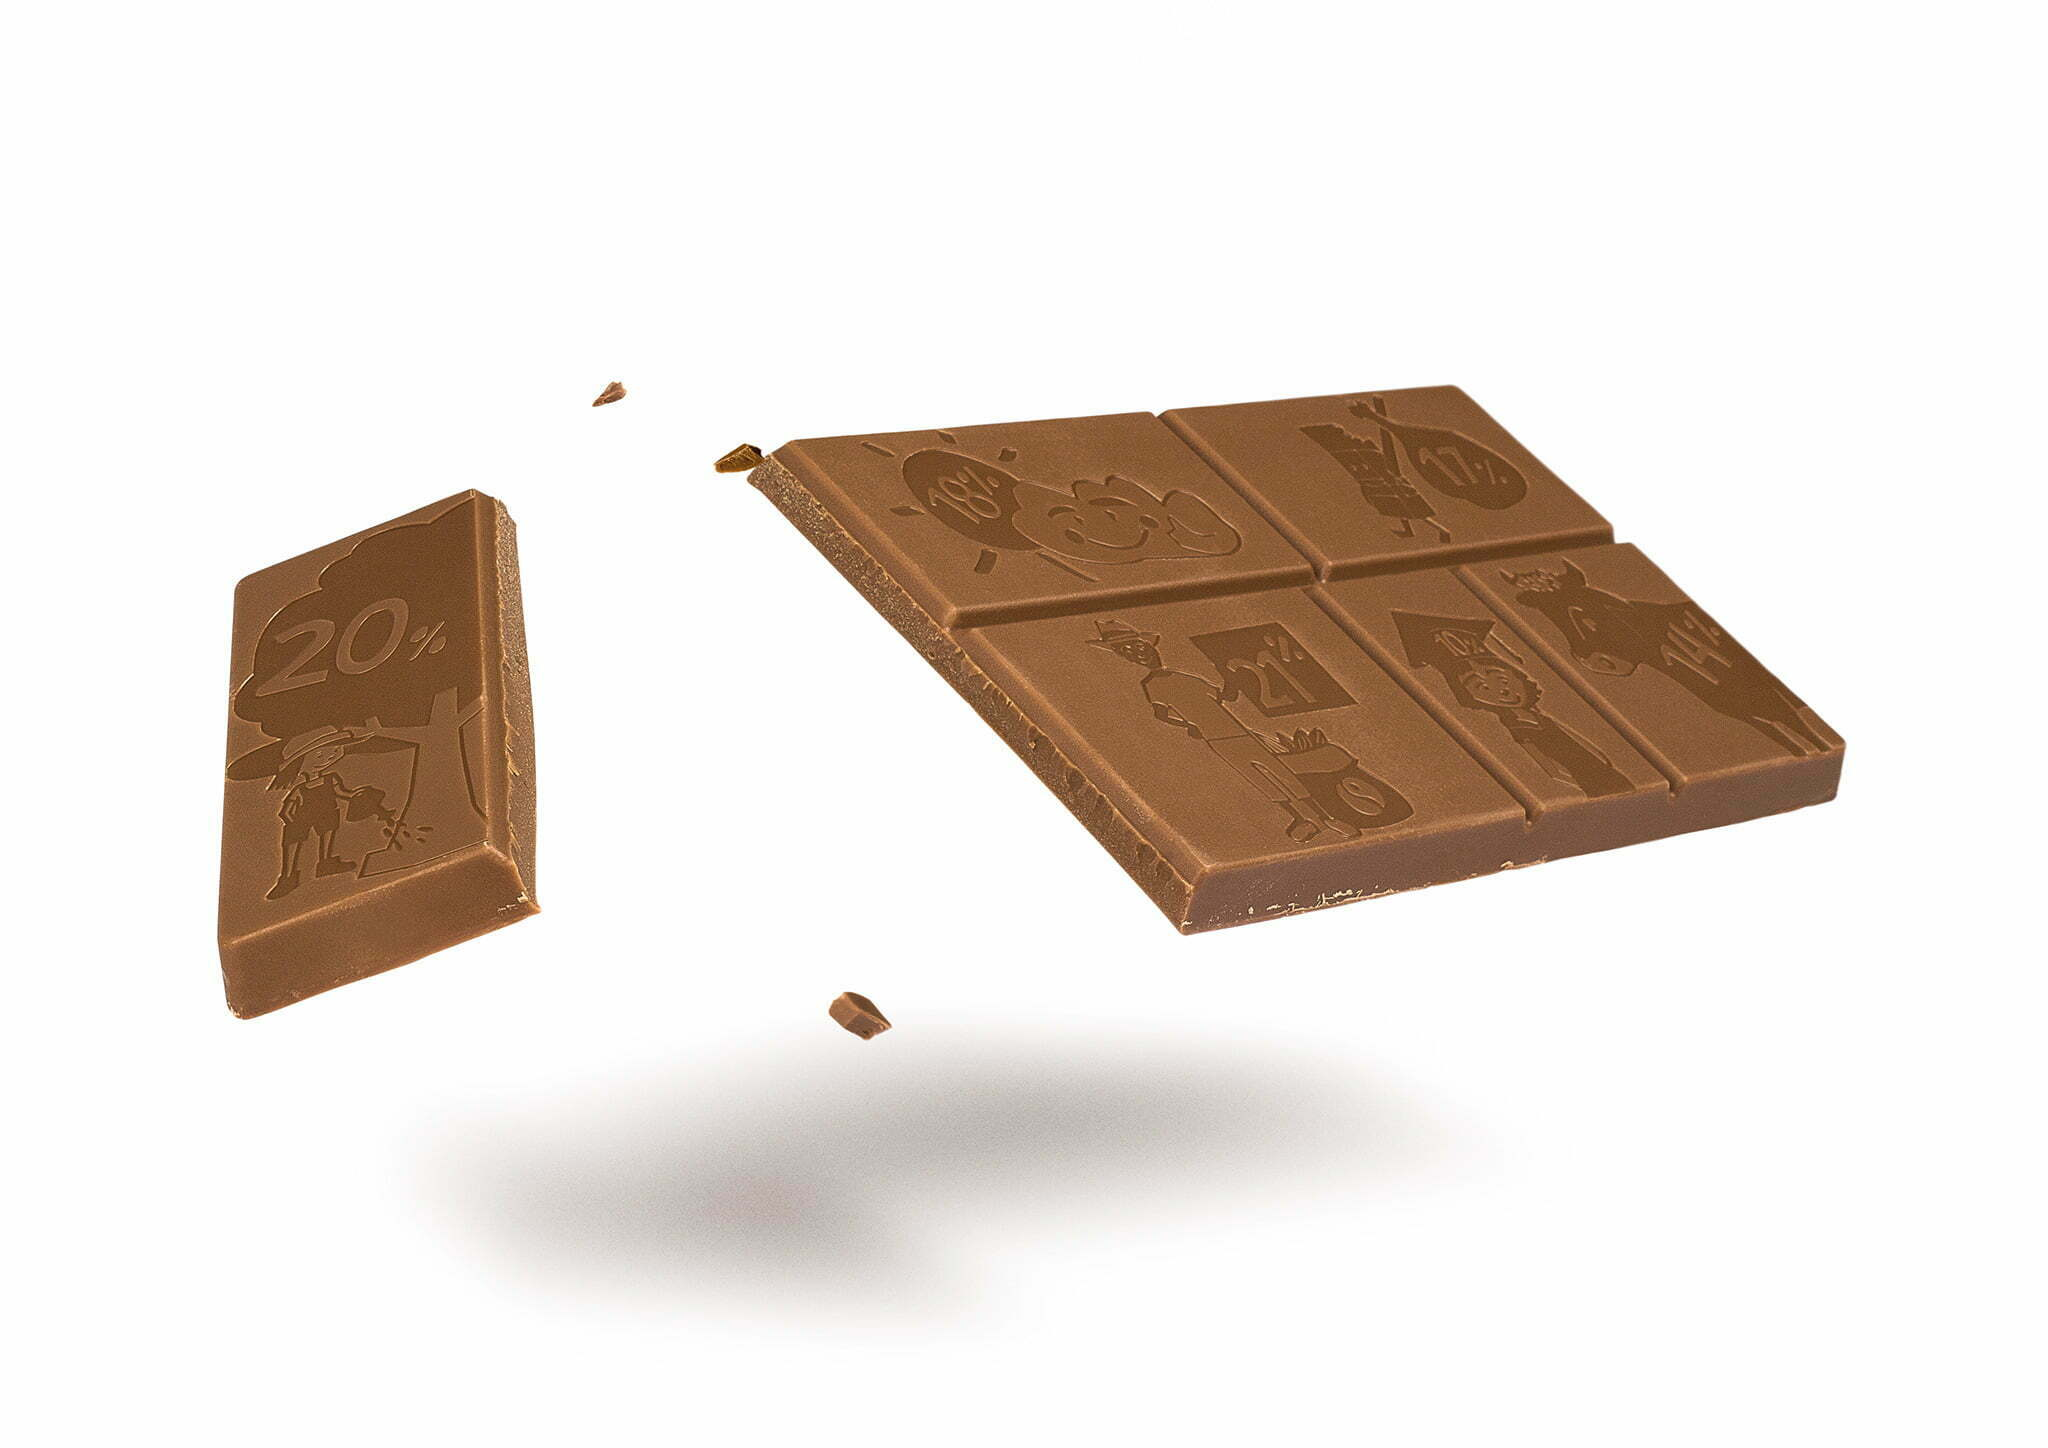 The Change Chocolate with a broken off piece